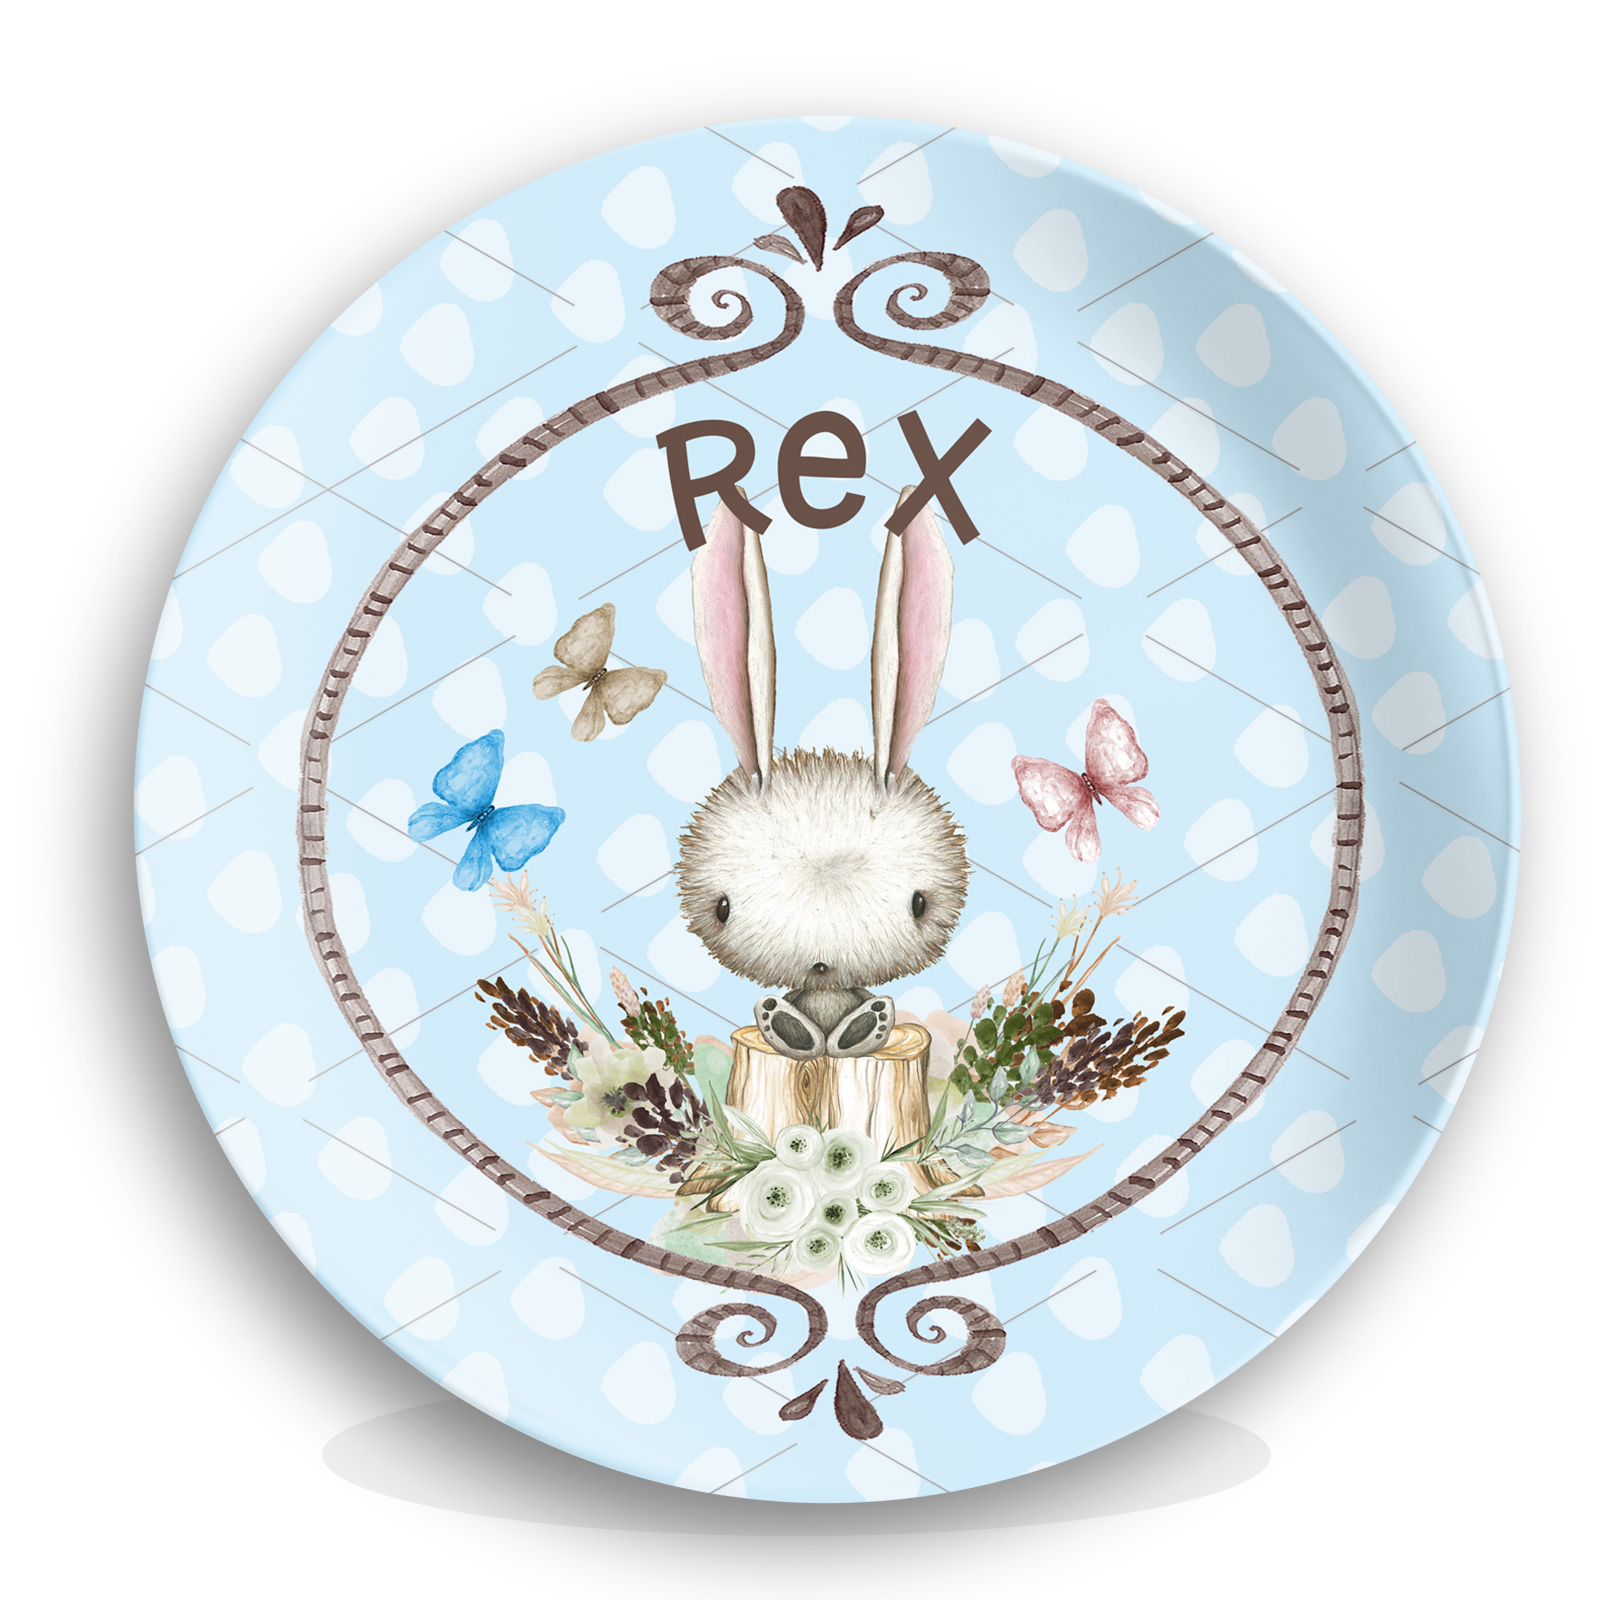 Personalized Kids Plate - Bunny Boys Easter Plate ...  sc 1 st  Lime Rikee Designs & Personalized Kids Plate - Bunny Boys Easter Plate Unique Birthday ...